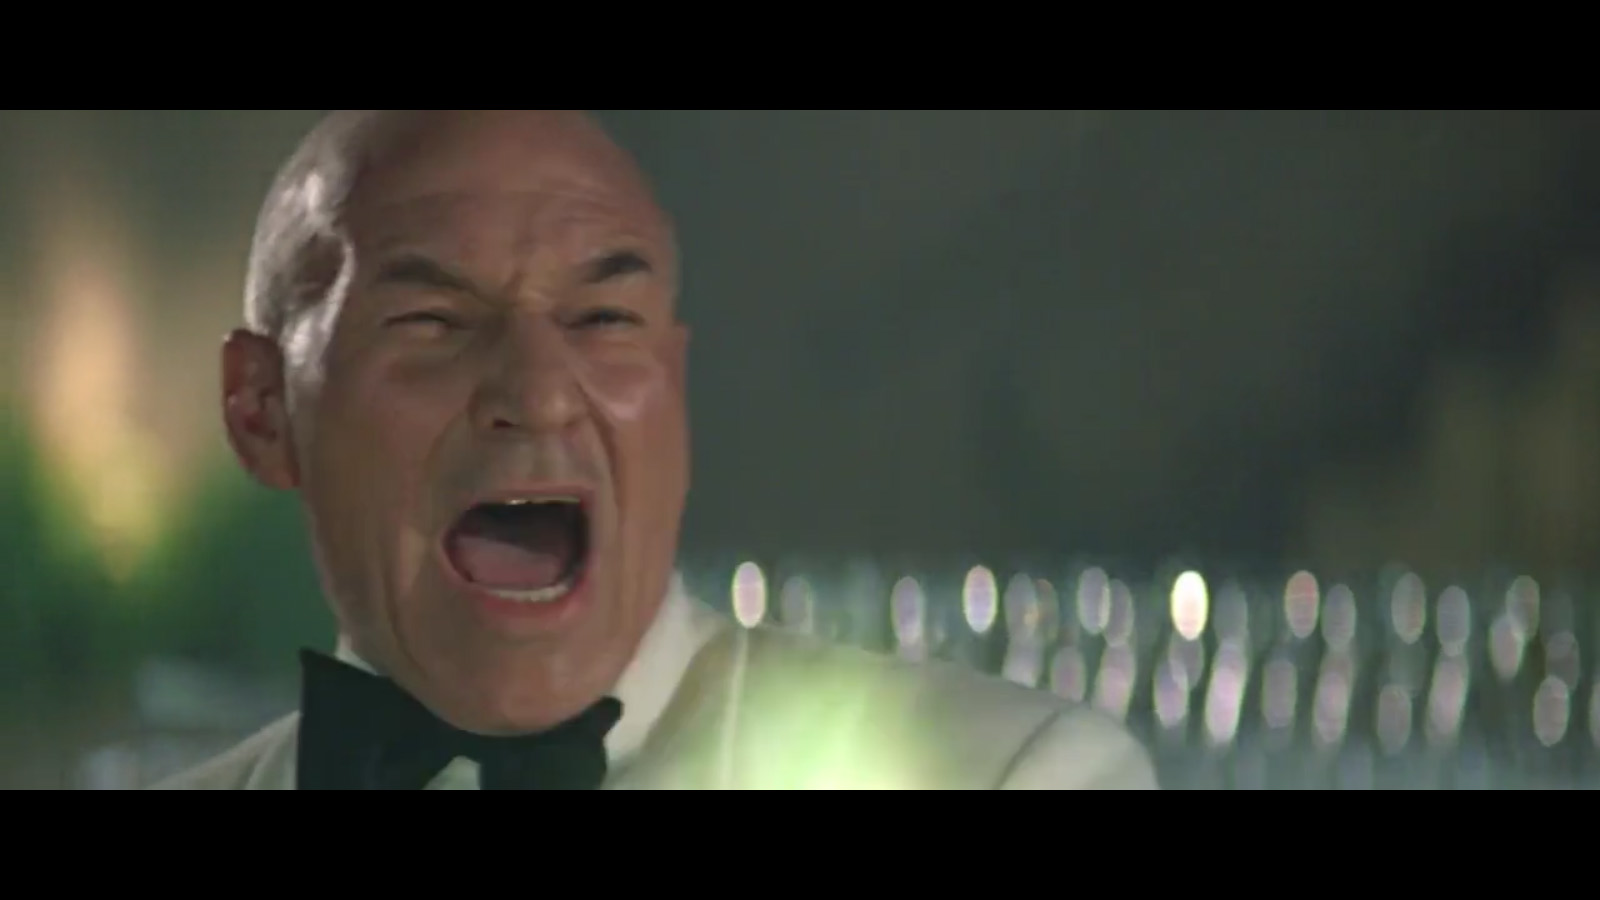 Picard firing 2 (screen capture)